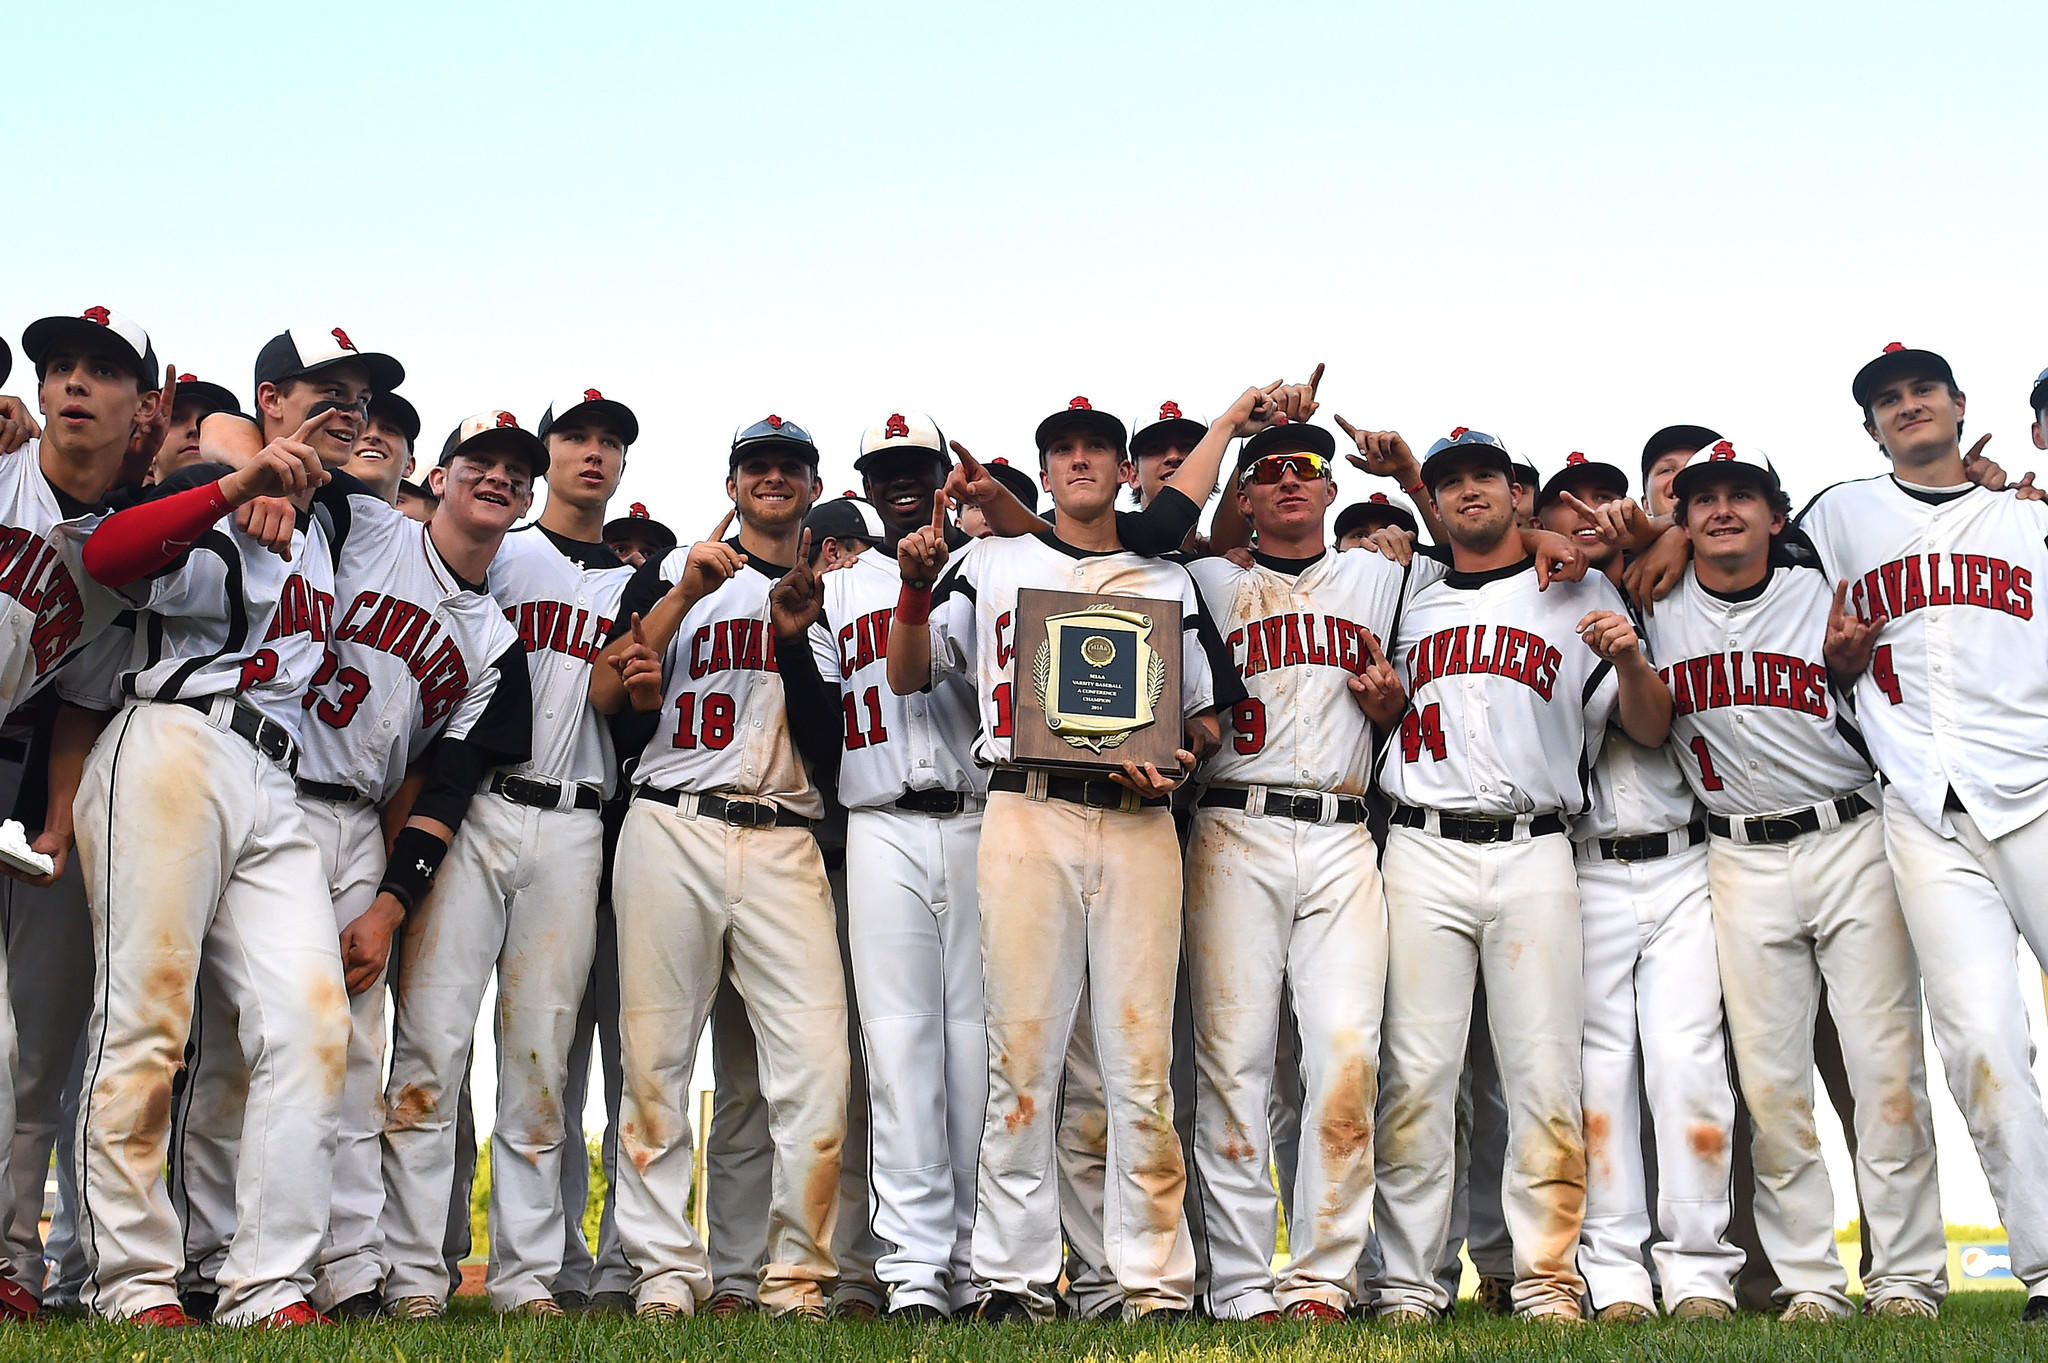 Archbishop Spalding celebrates after defeating Calvert Hall, 5-2, in the Maryland Interscholastic Athletic Association A Conference championship at Ripken Stadium.